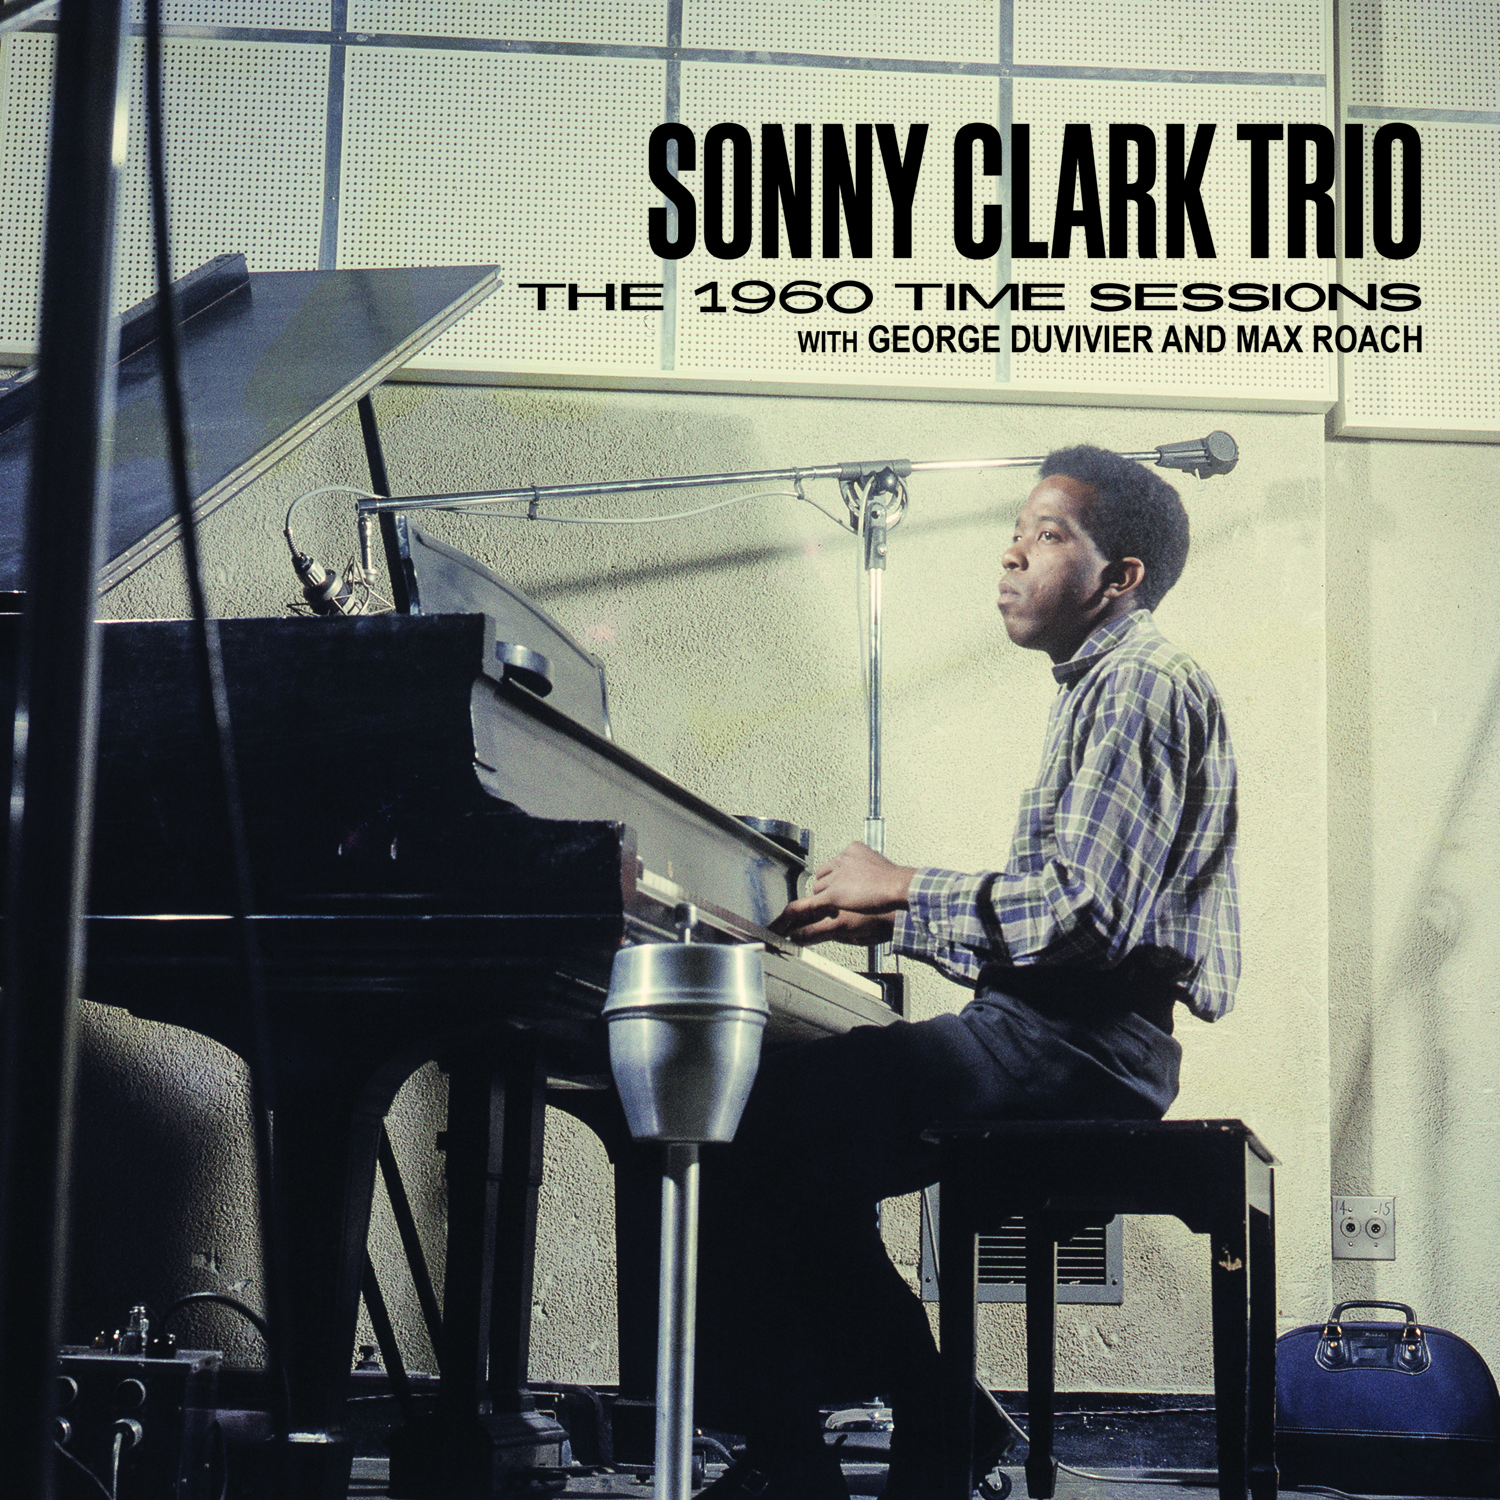 The Sonny Clark Trio: The 1960 Time Sessions